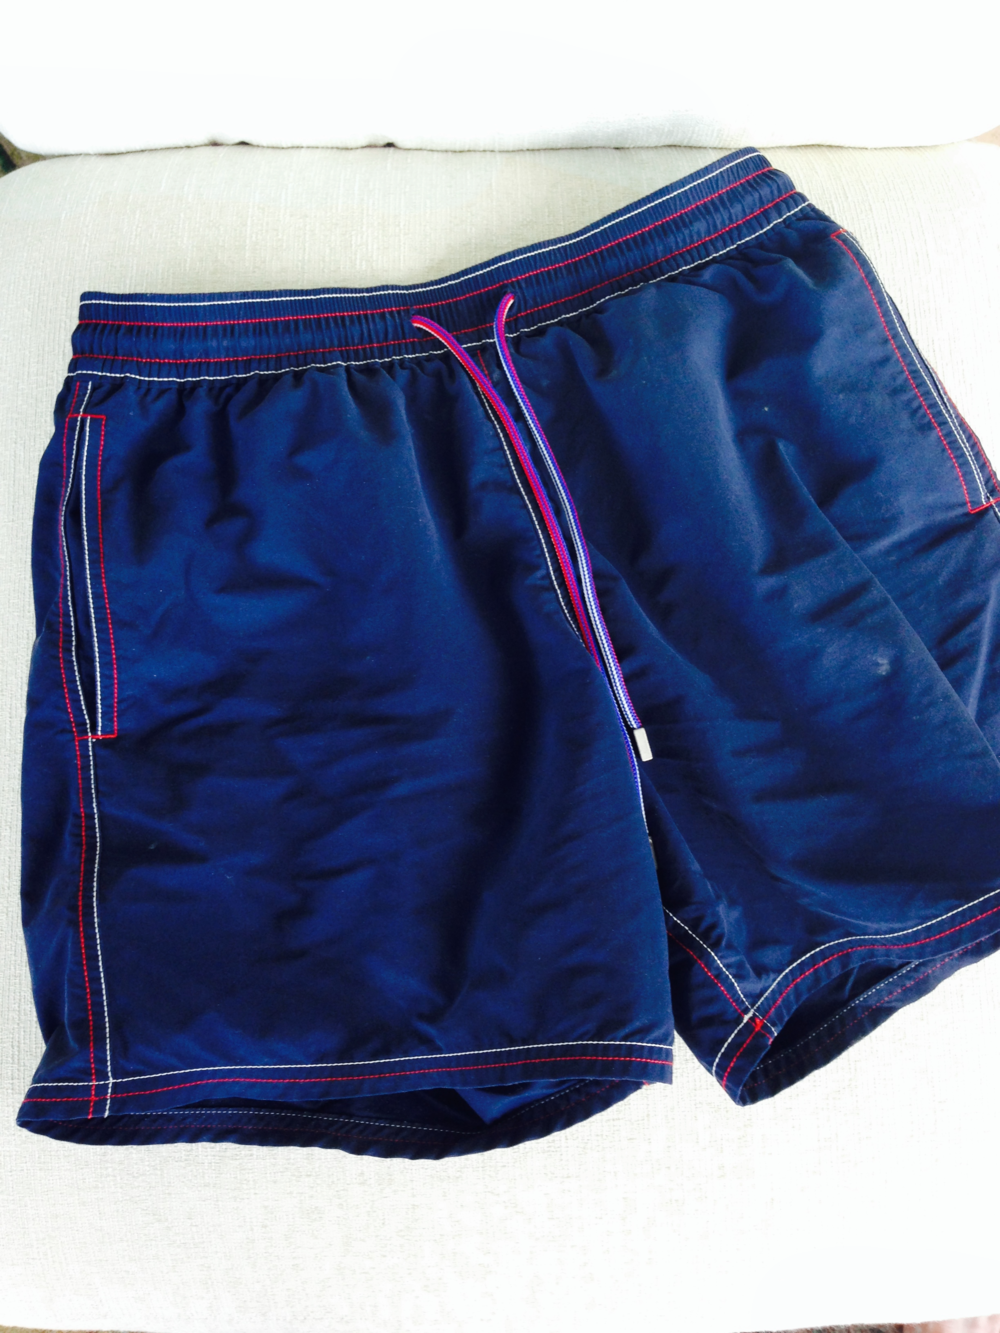 Navy trunks: why other colors exist is another of man's great mysteries.